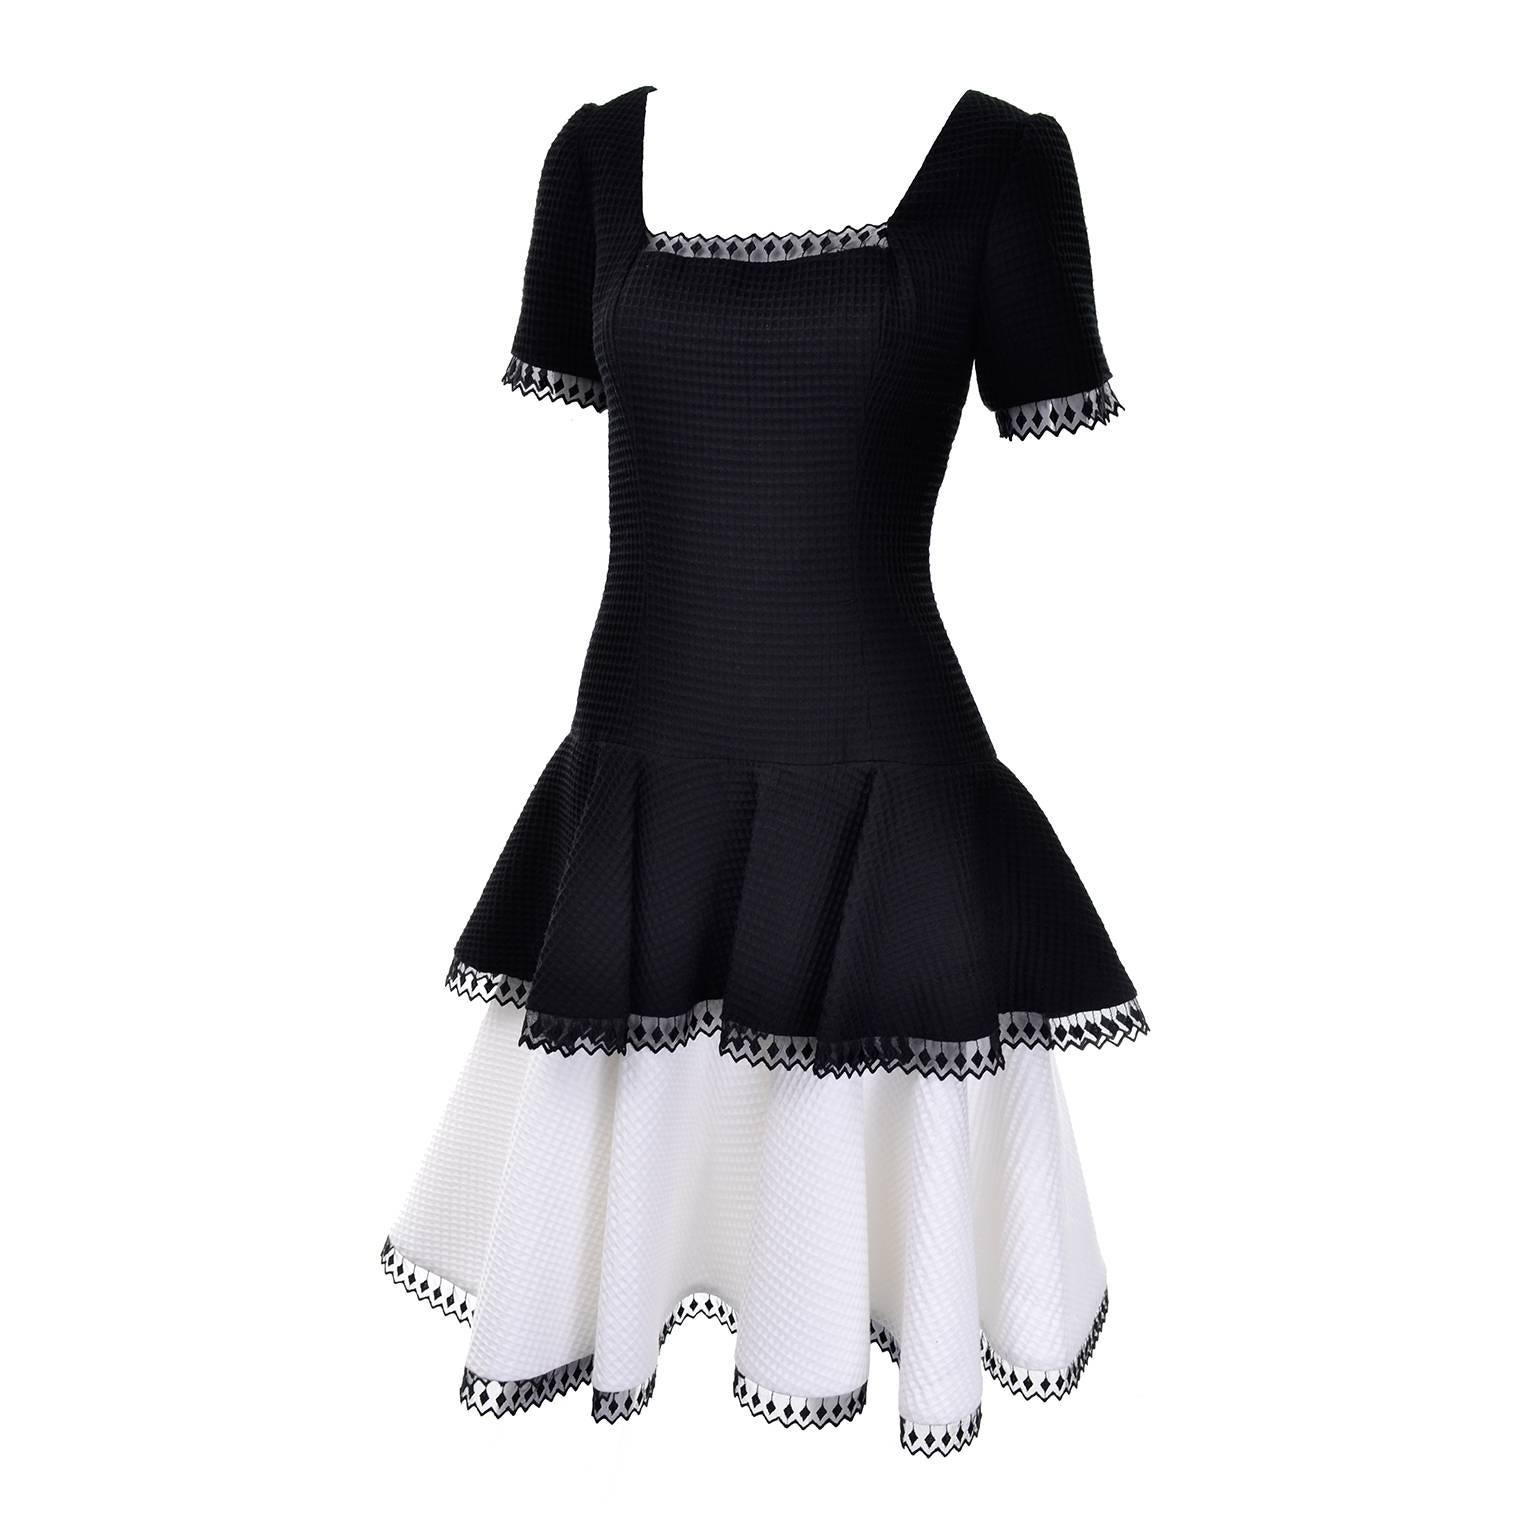 bac65214701 Vintage Victor Costa Black + White Silk Taffeta Lace Cocktail Dress For Sale  at 1stdibs